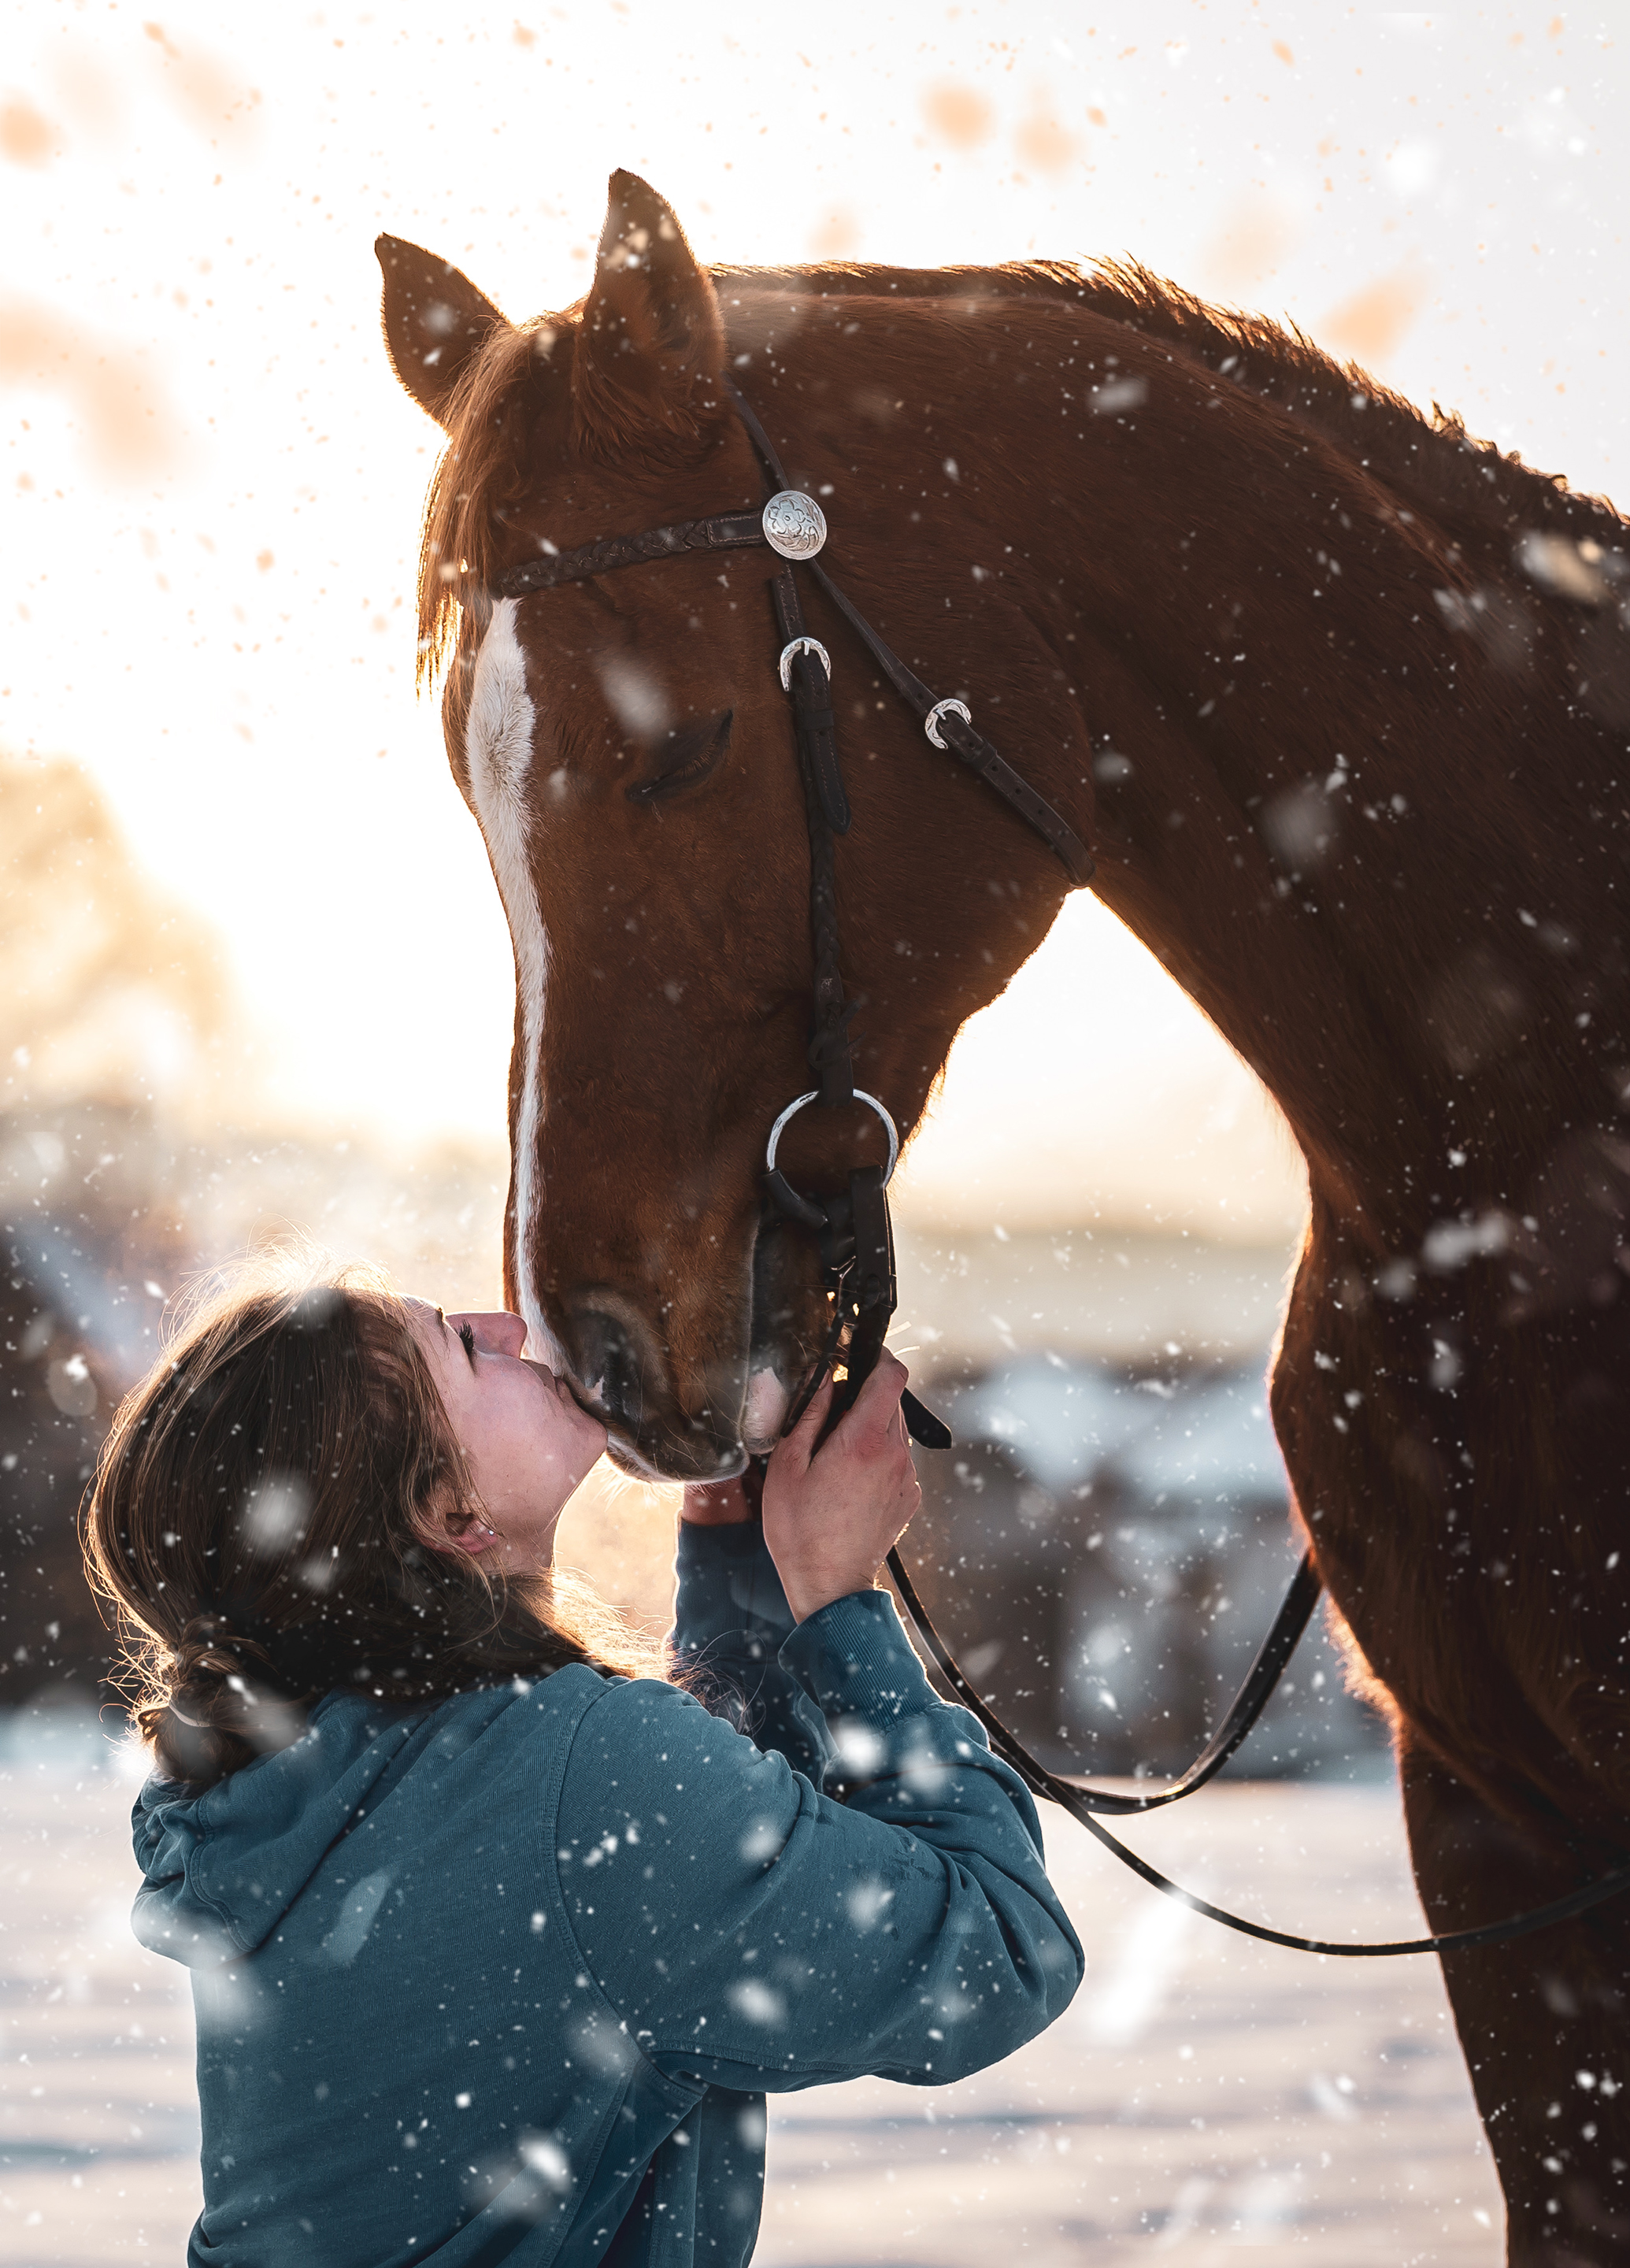 EQUIN_WinterShooting_Pferd1